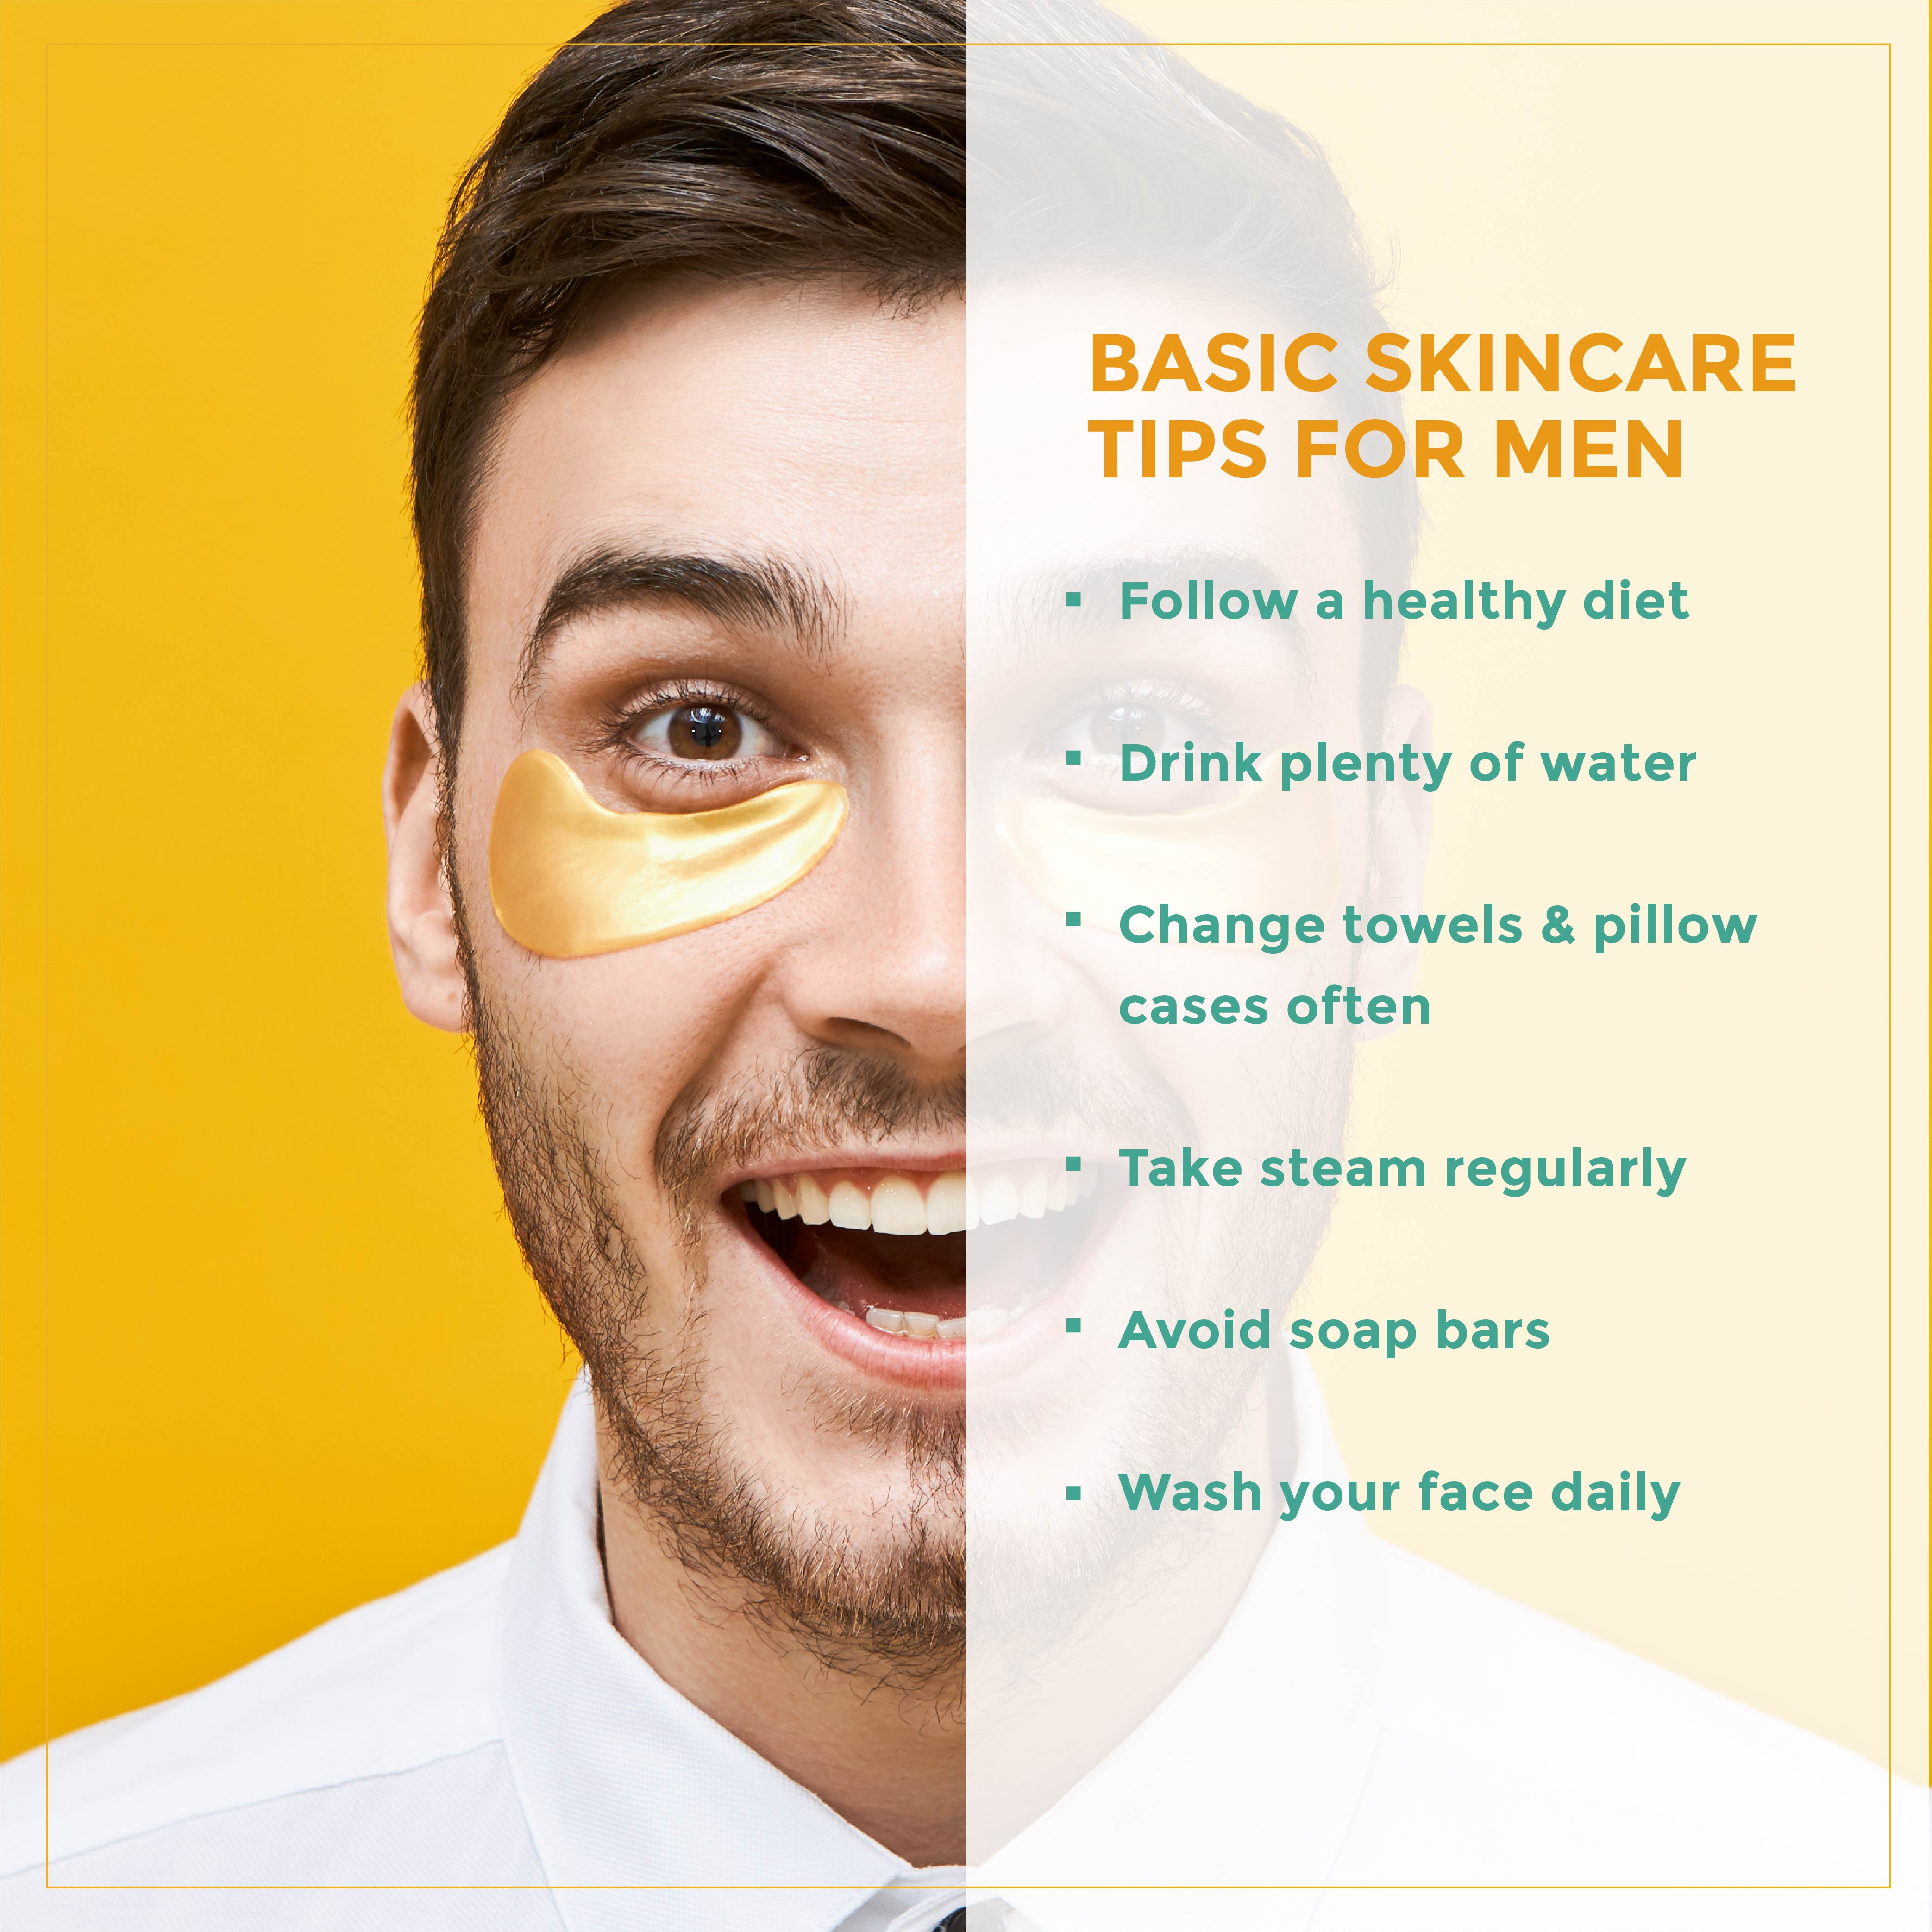 This is an image of skincare tips for men